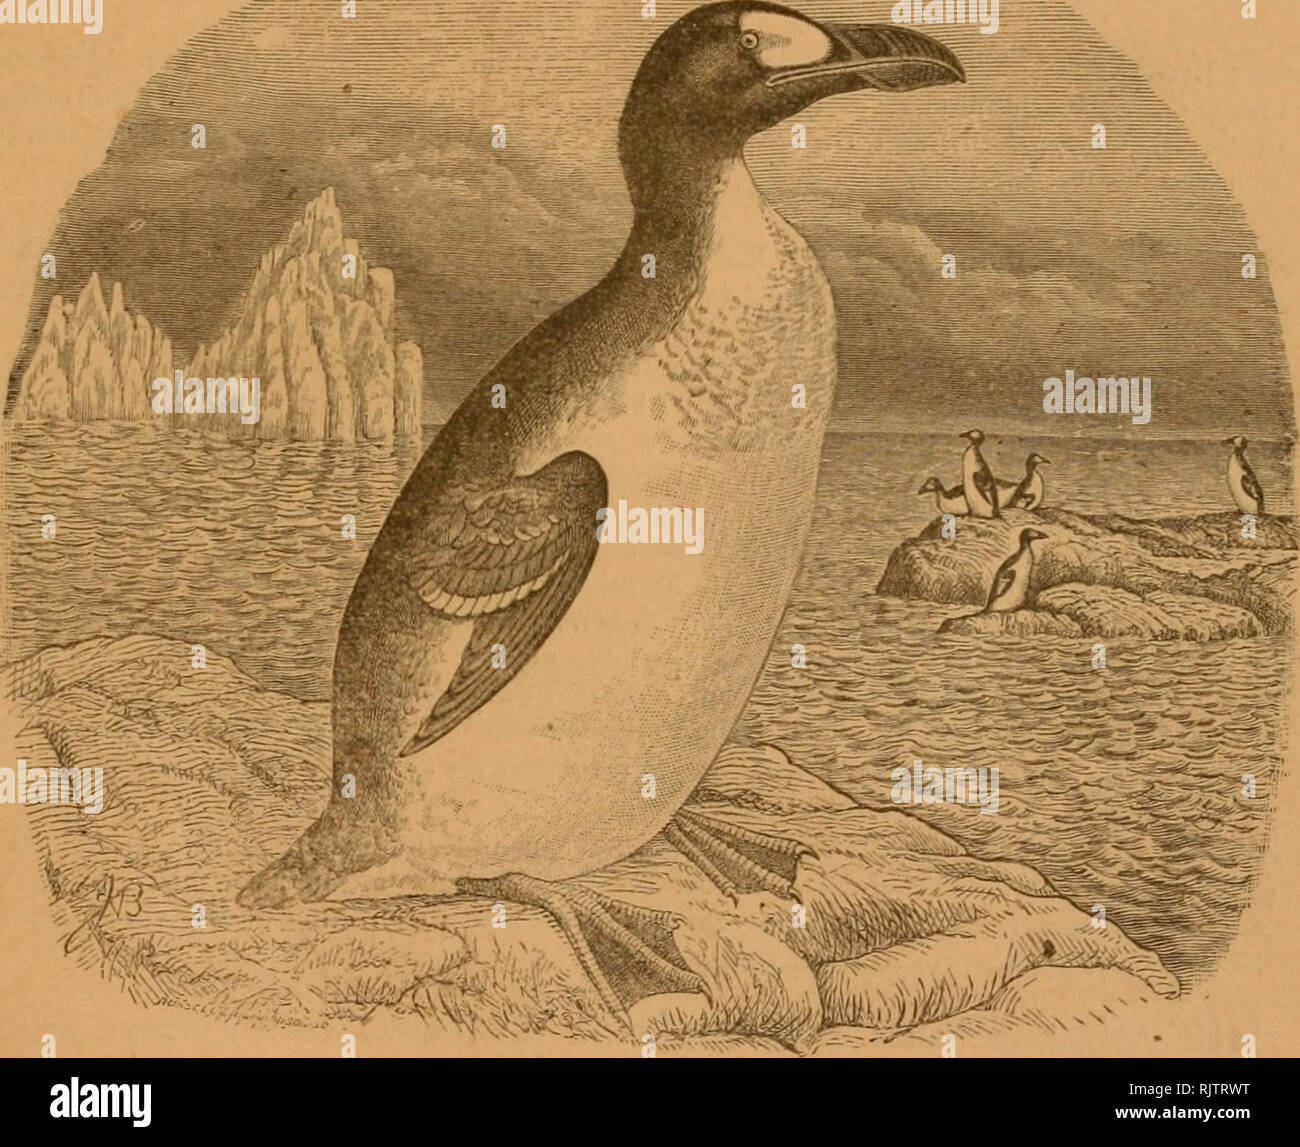 . The Auk. Birds. 0ld | CONTINUATION OF THE f New ''â 'xv j BULLETIN OF THE NUTTALL ORNITHOLOGICAL CLUB Series' Vol Vol. VII The Auk 3 flhiartcrl? Journal of £>rmtI)ology Vol. VII -JANUAUT, 1890 No. 1. PUBLISHED FOR The American Ornithologist NEW YORK Li. S. FOSTER,. Please note that these images are extracted from scanned page images that may have been digitally enhanced for readability - coloration and appearance of these illustrations may not perfectly resemble the original work.. American Ornithologists' Union. Washington, D. C. : American Ornithologists' Union, etc. - Stock Image